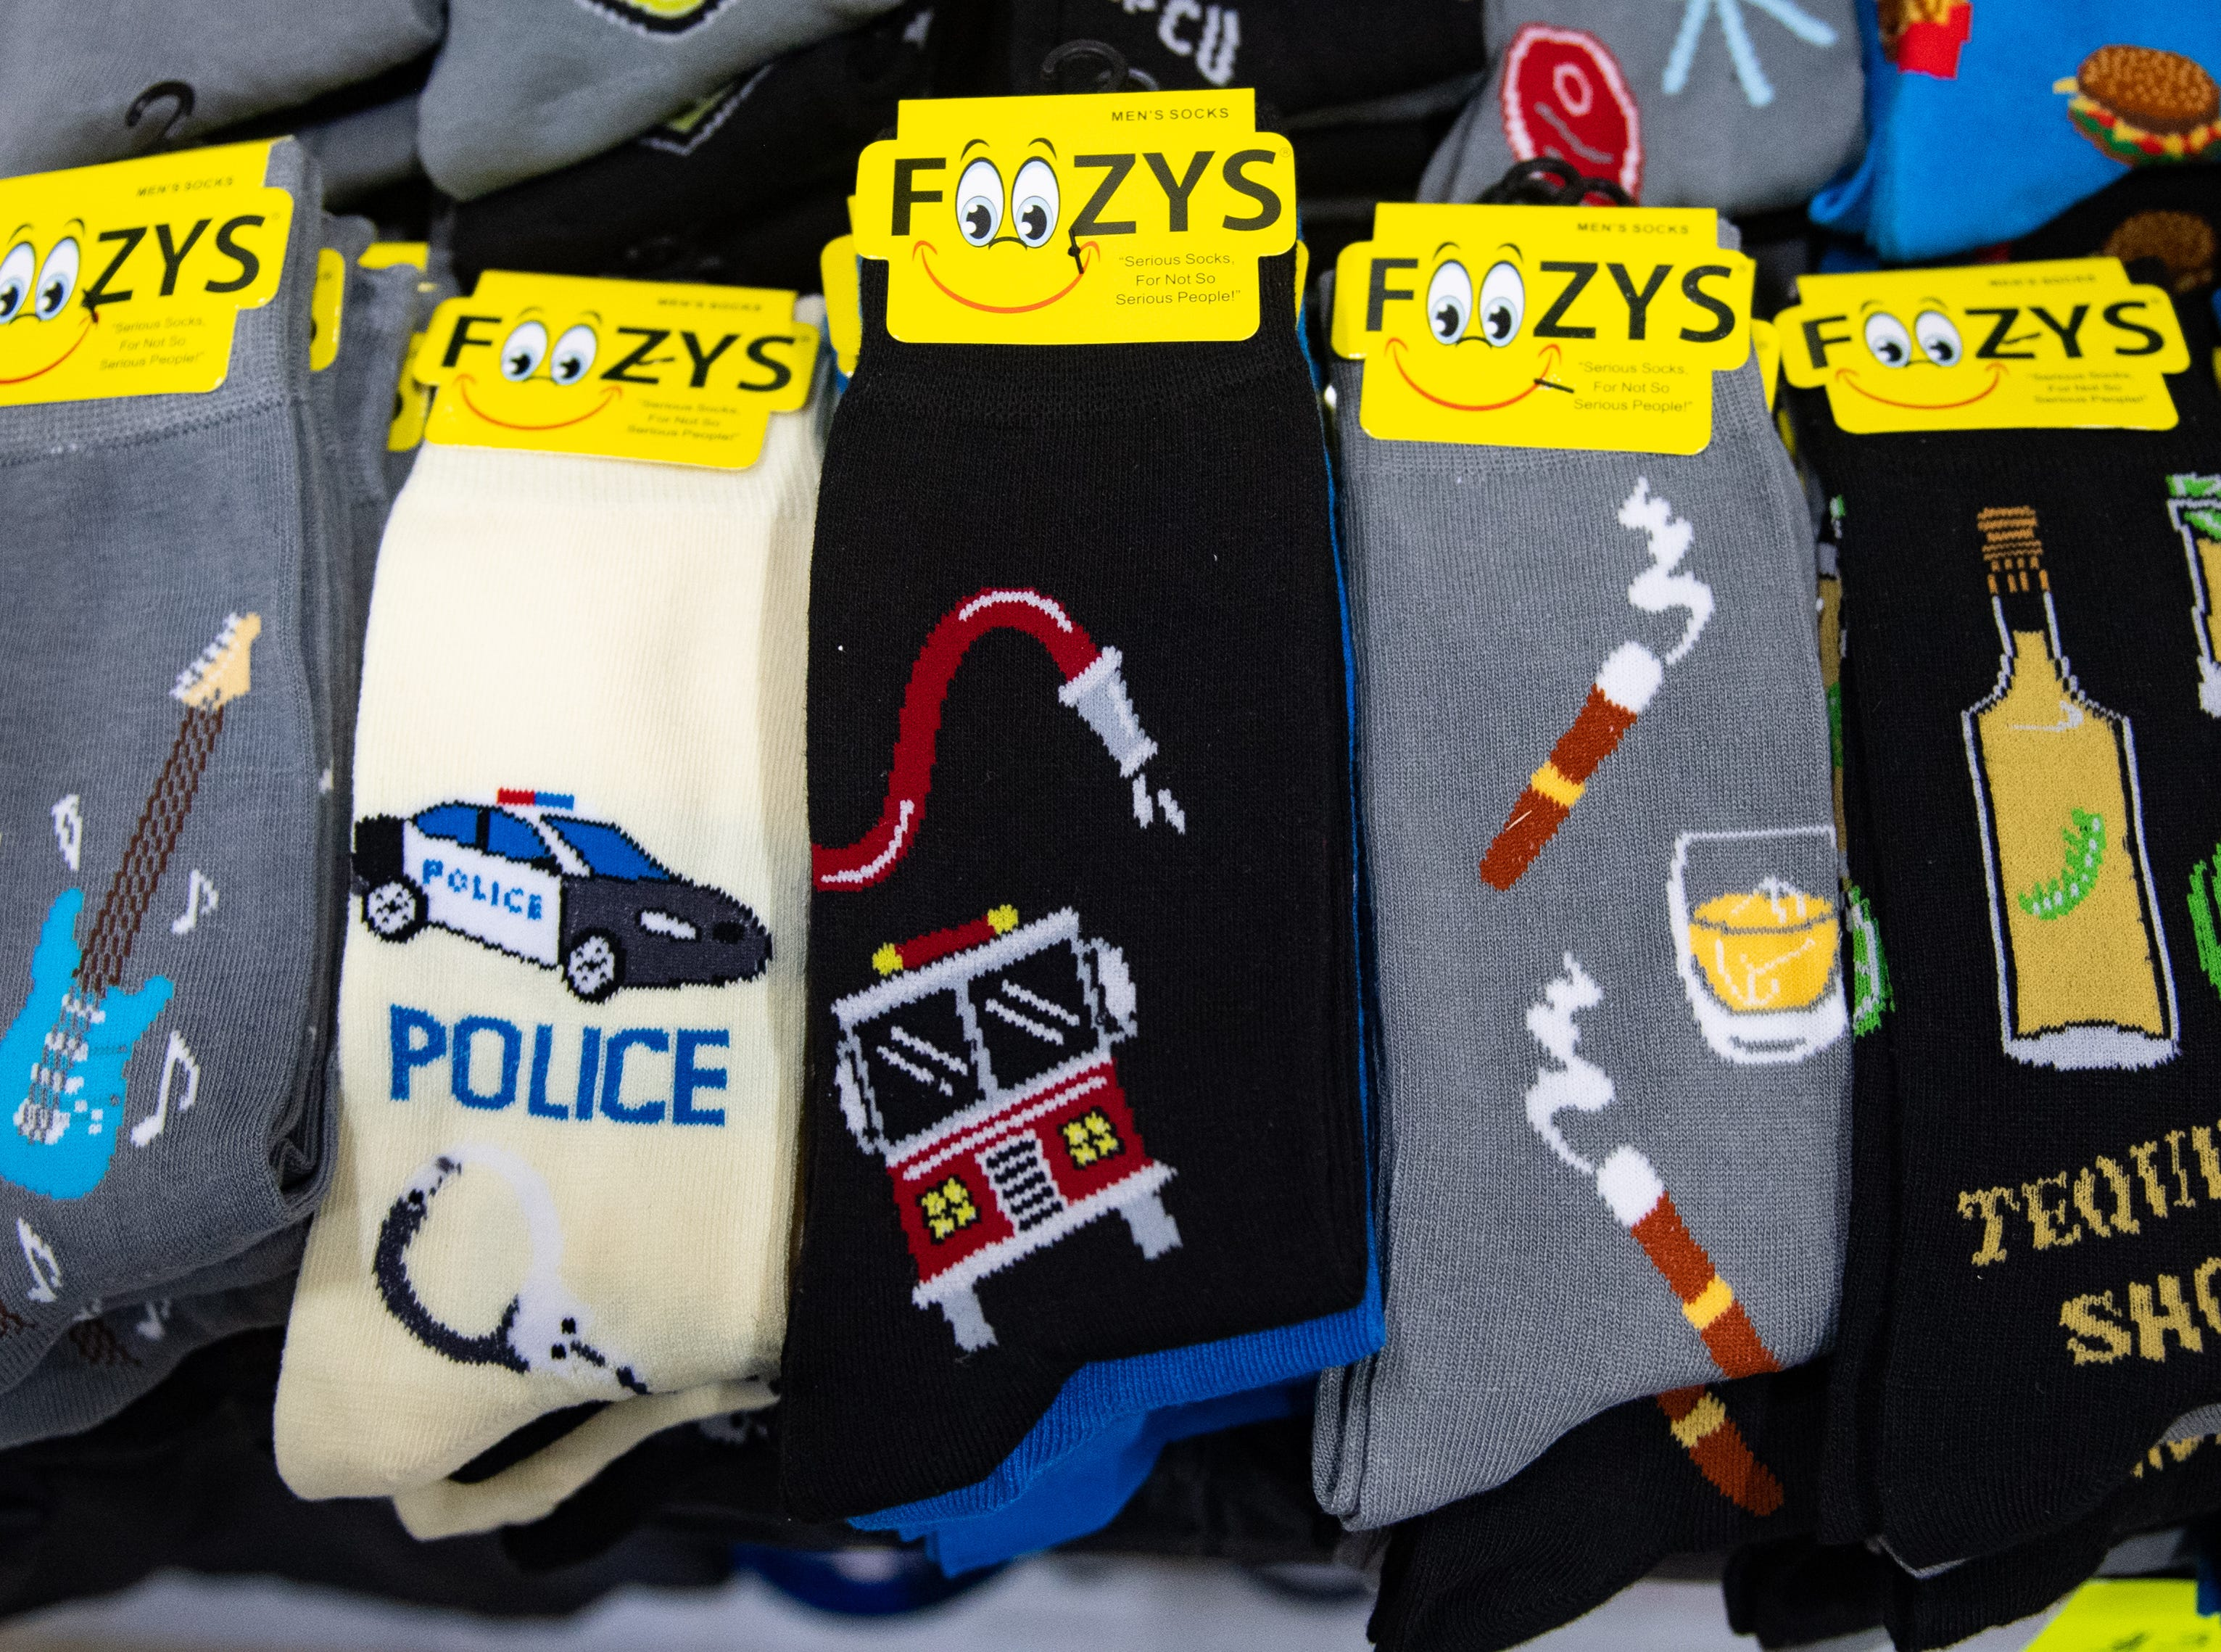 A wide variety of Foozy's socks are on sale at the 2019 Home & Garden Show, February 8, 2019.